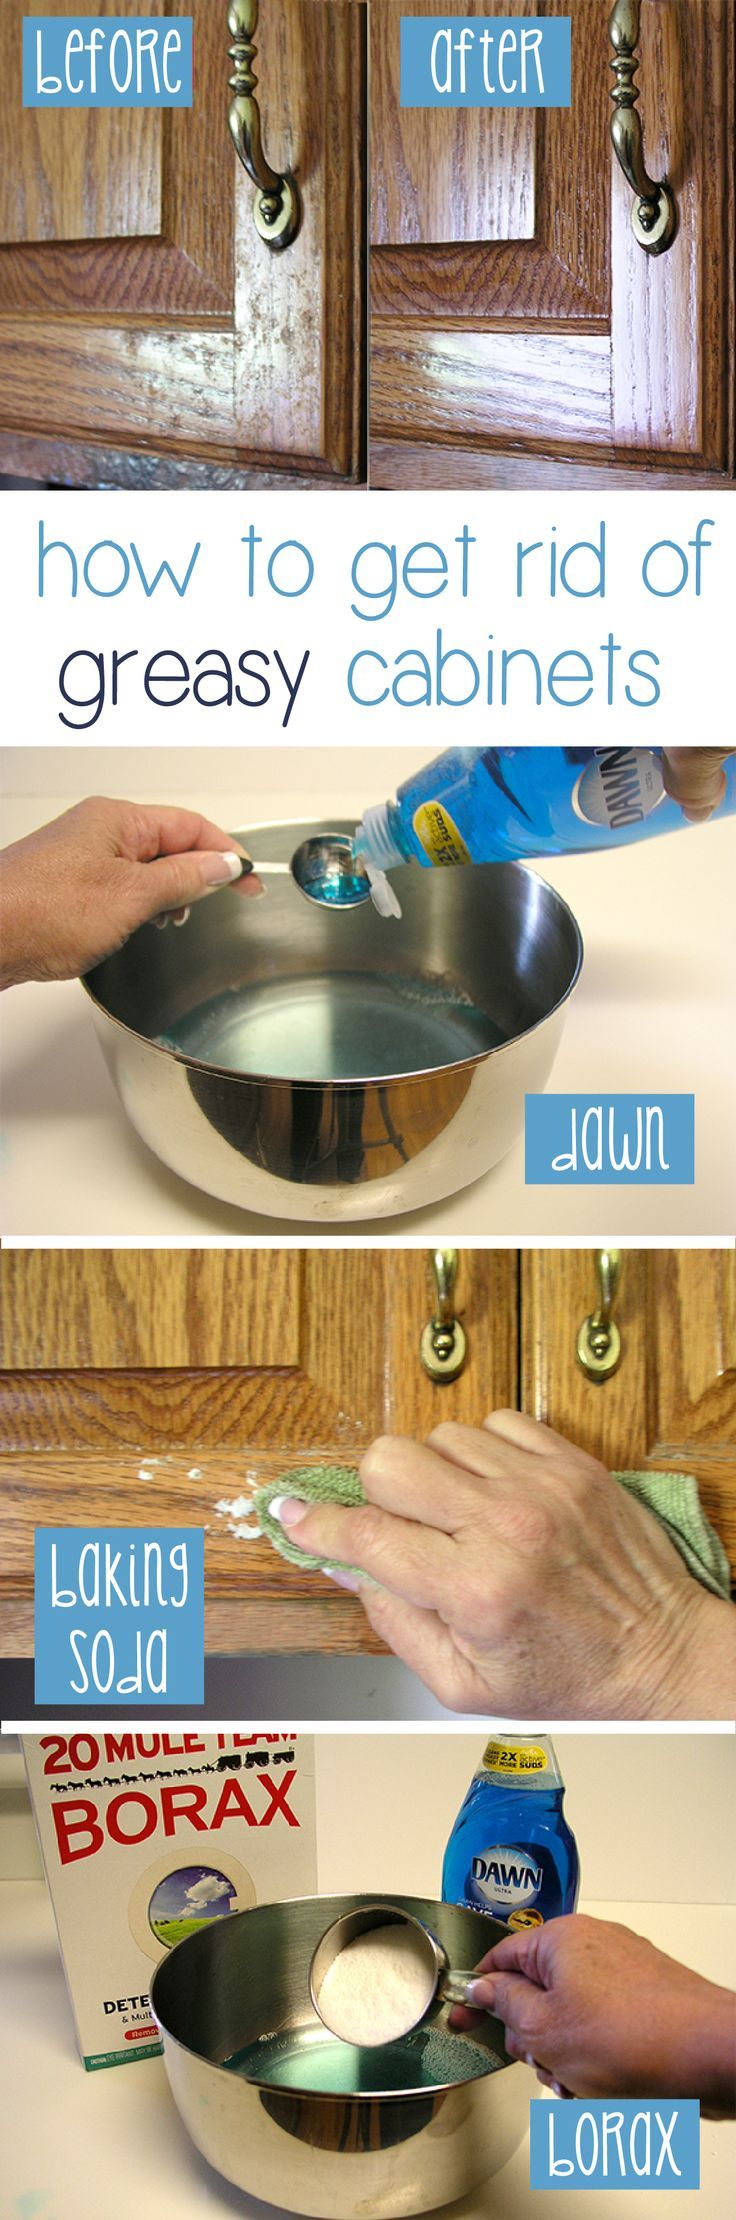 How To Remove Grease From White Kitchen Cabinets How To Clean Grease From Kitchen Cabinet Doors